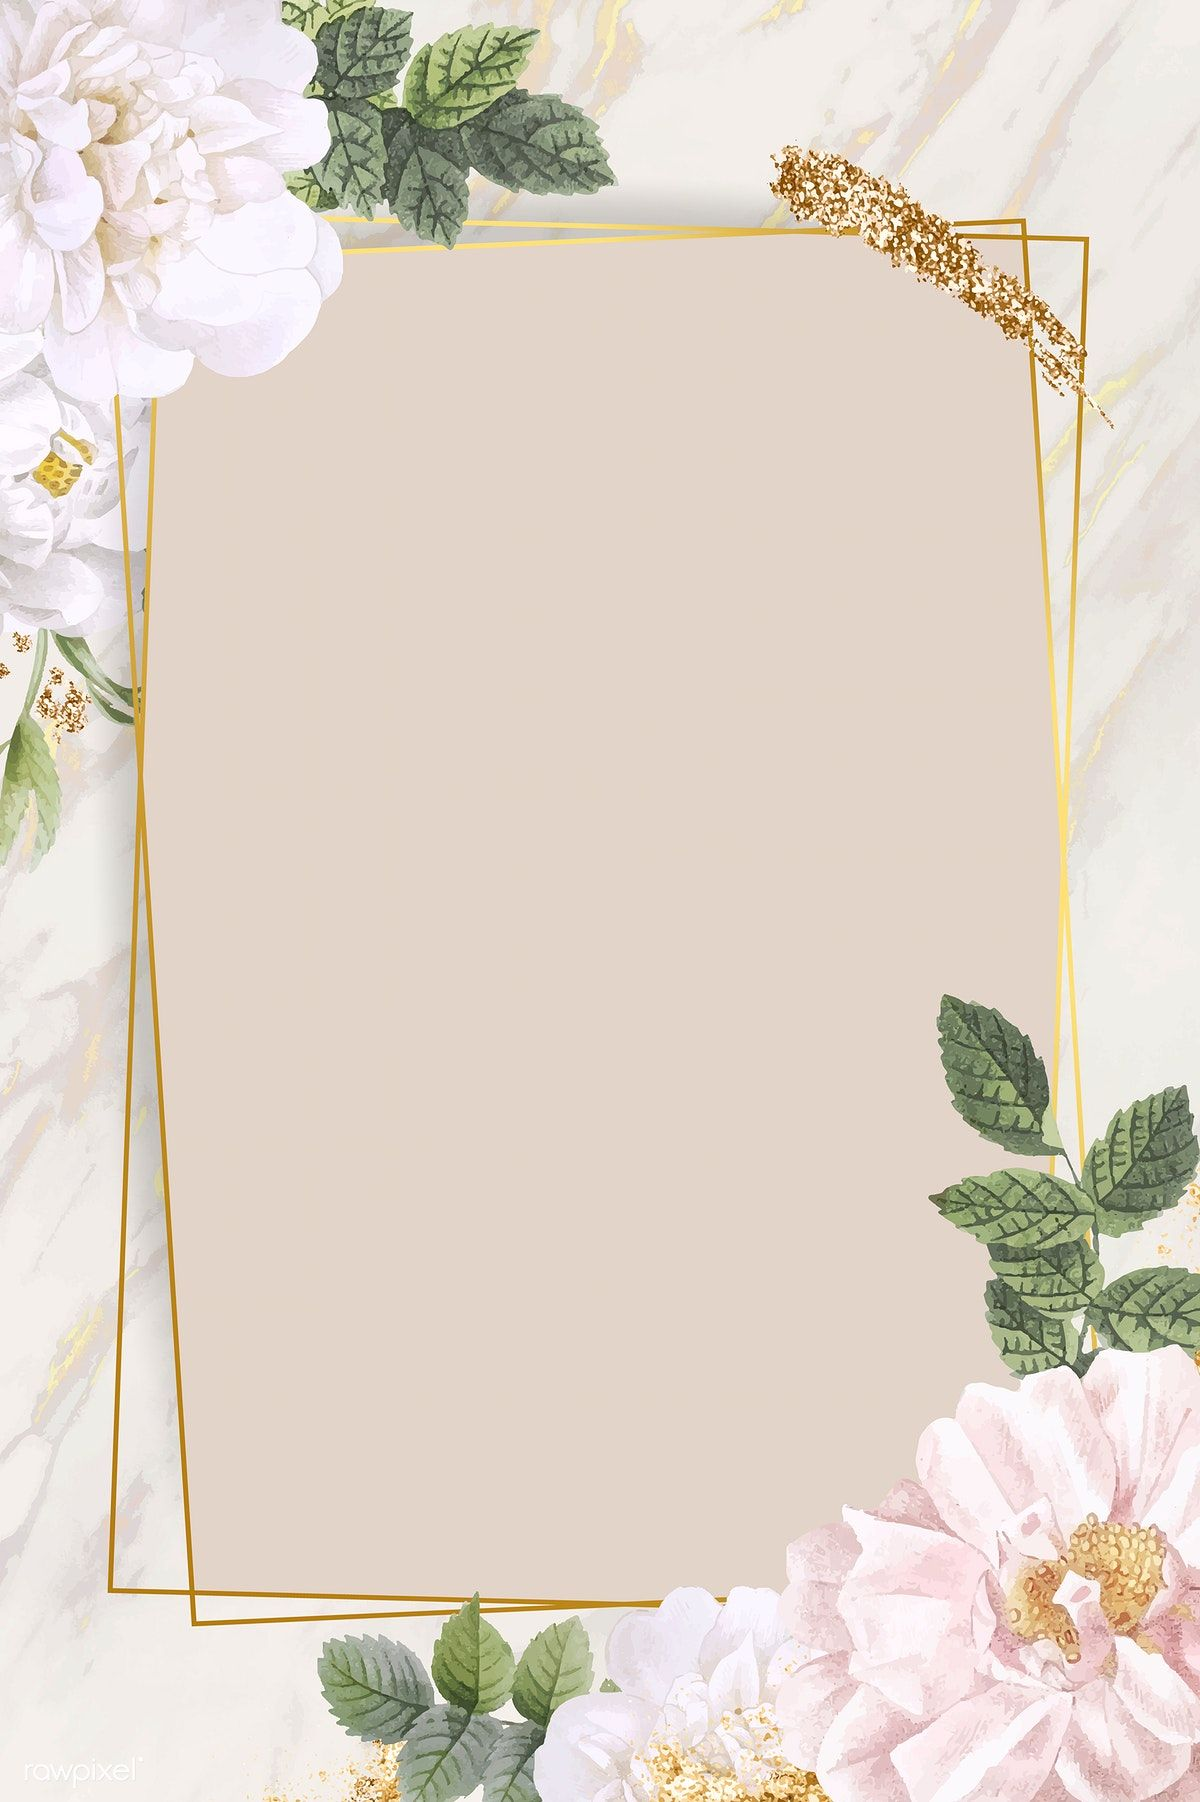 Rectangle Rose Frame On Marble Background Vector Premium Image By Rawpixel Com Sasi Floral Wallpaper Phone Rose Frame Flower Background Wallpaper